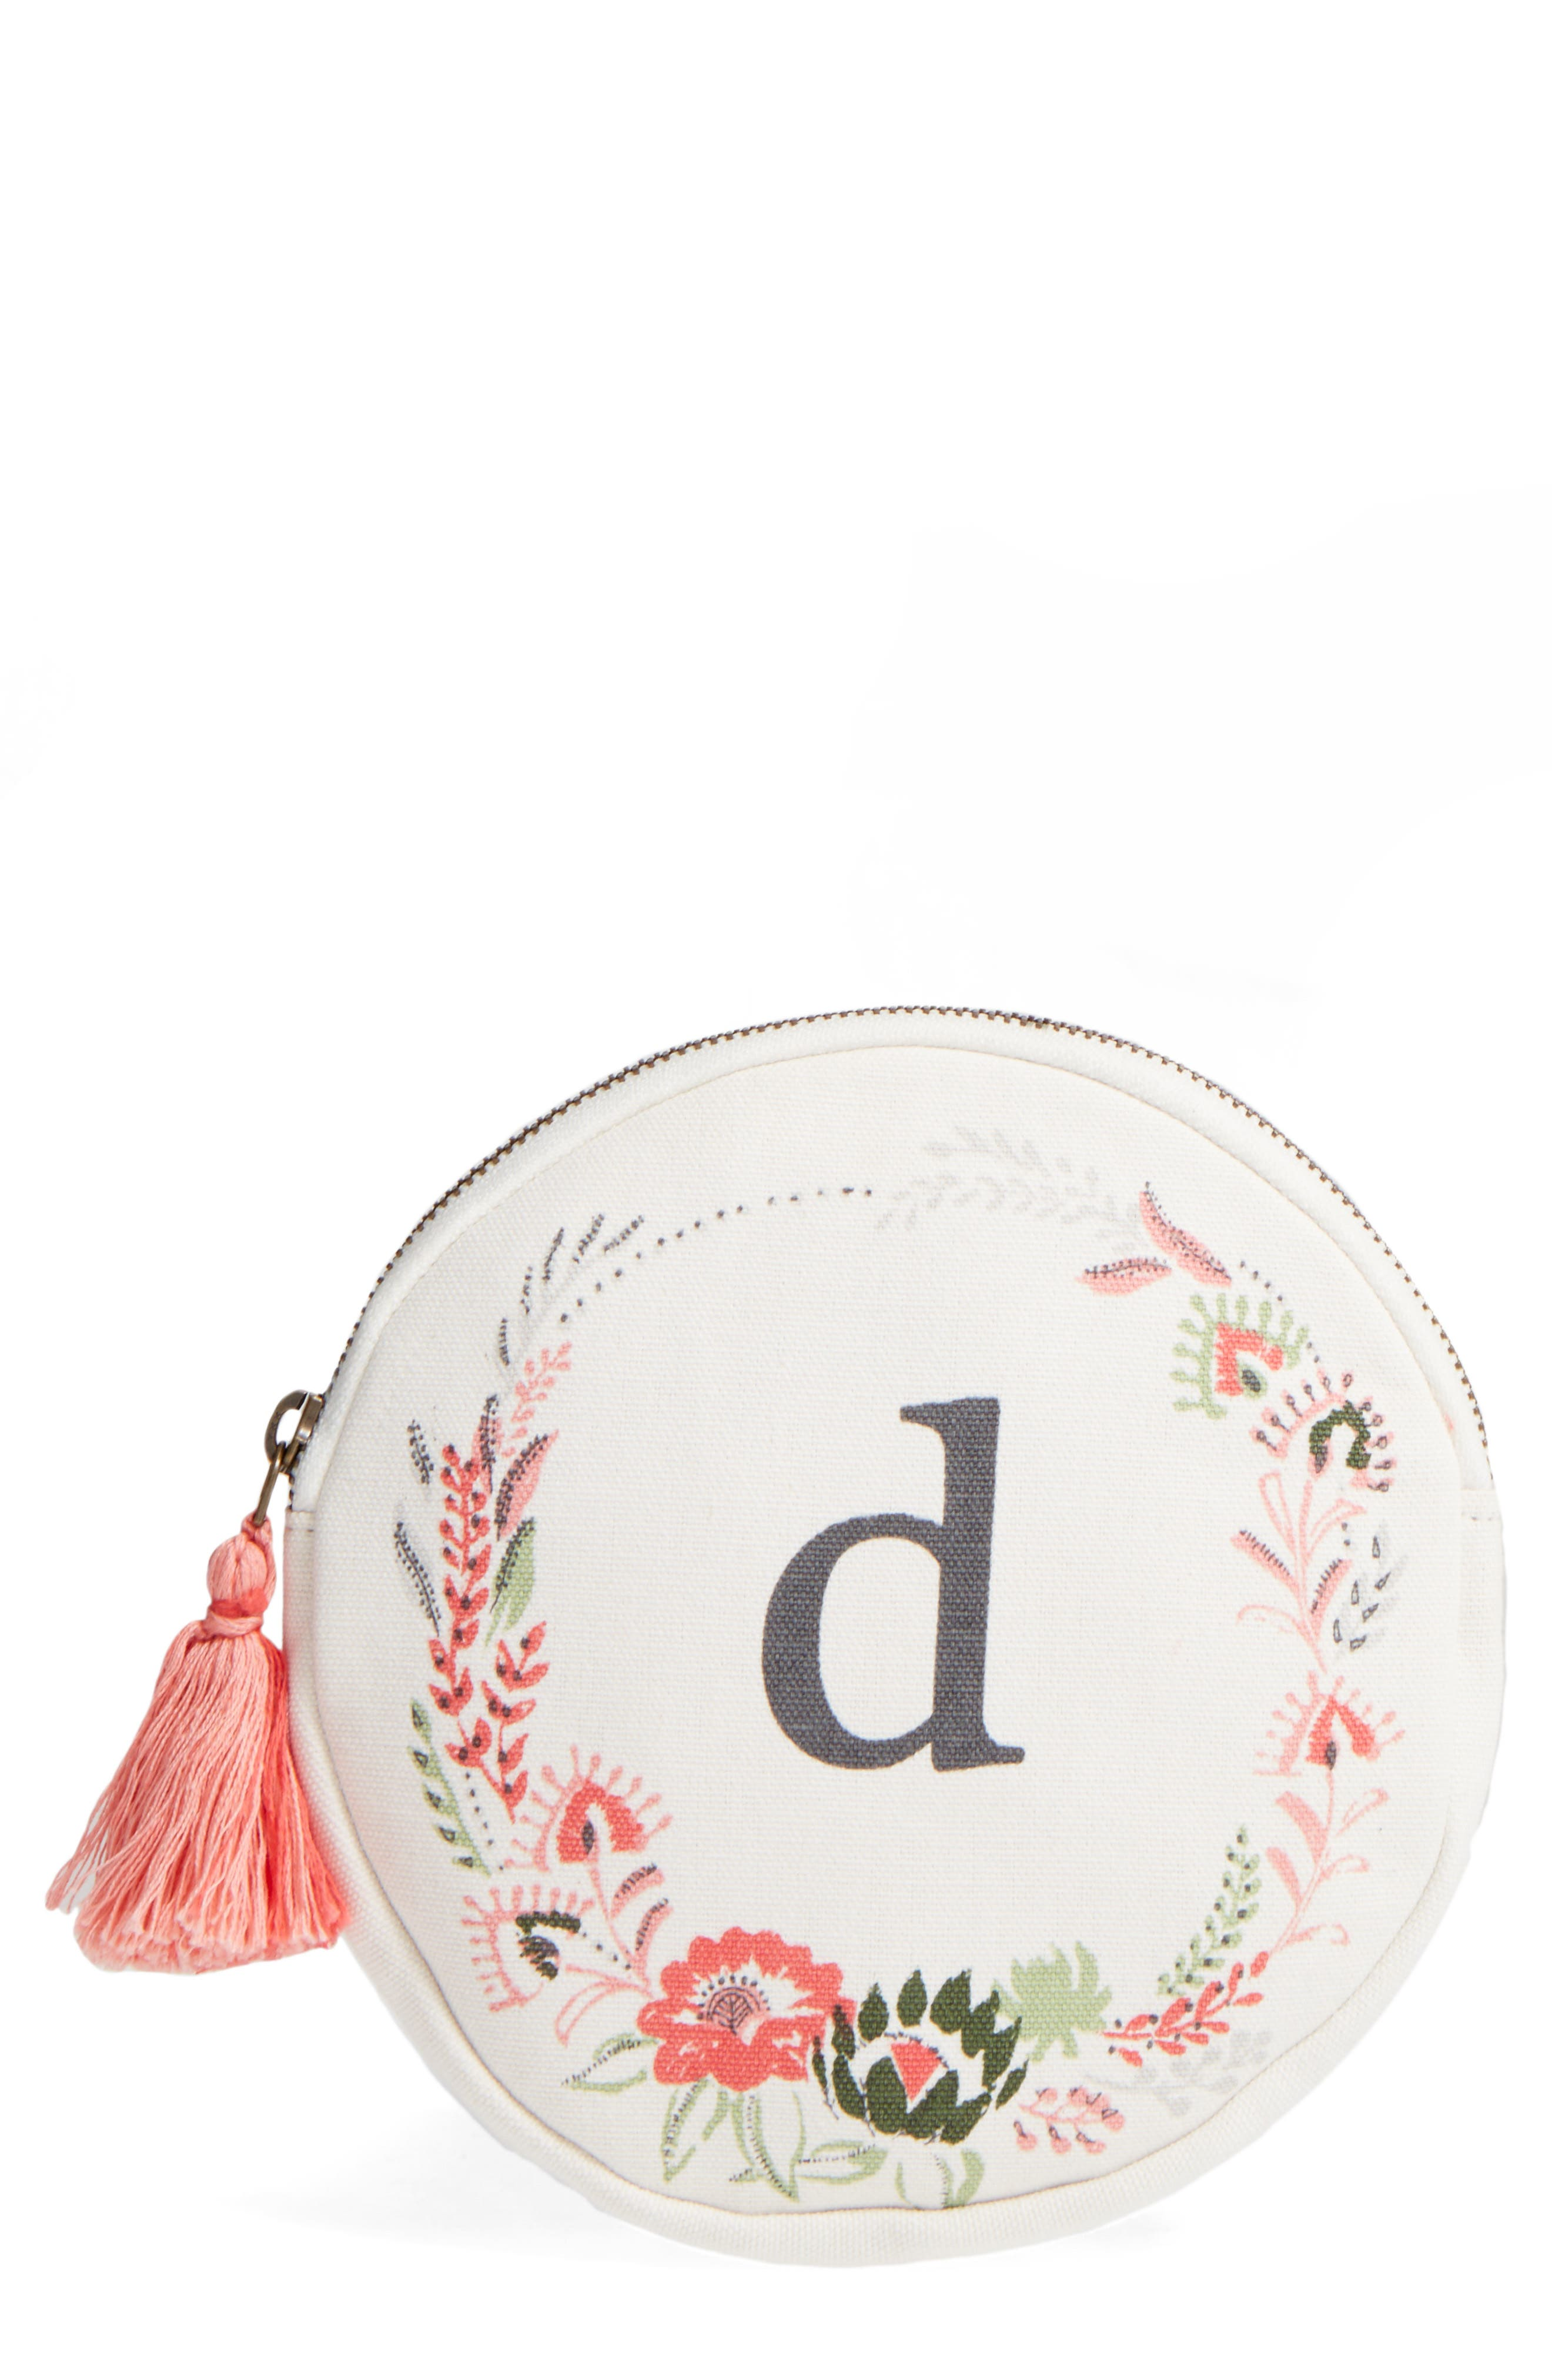 Nordstrom at Home Floral Monogram Pouch